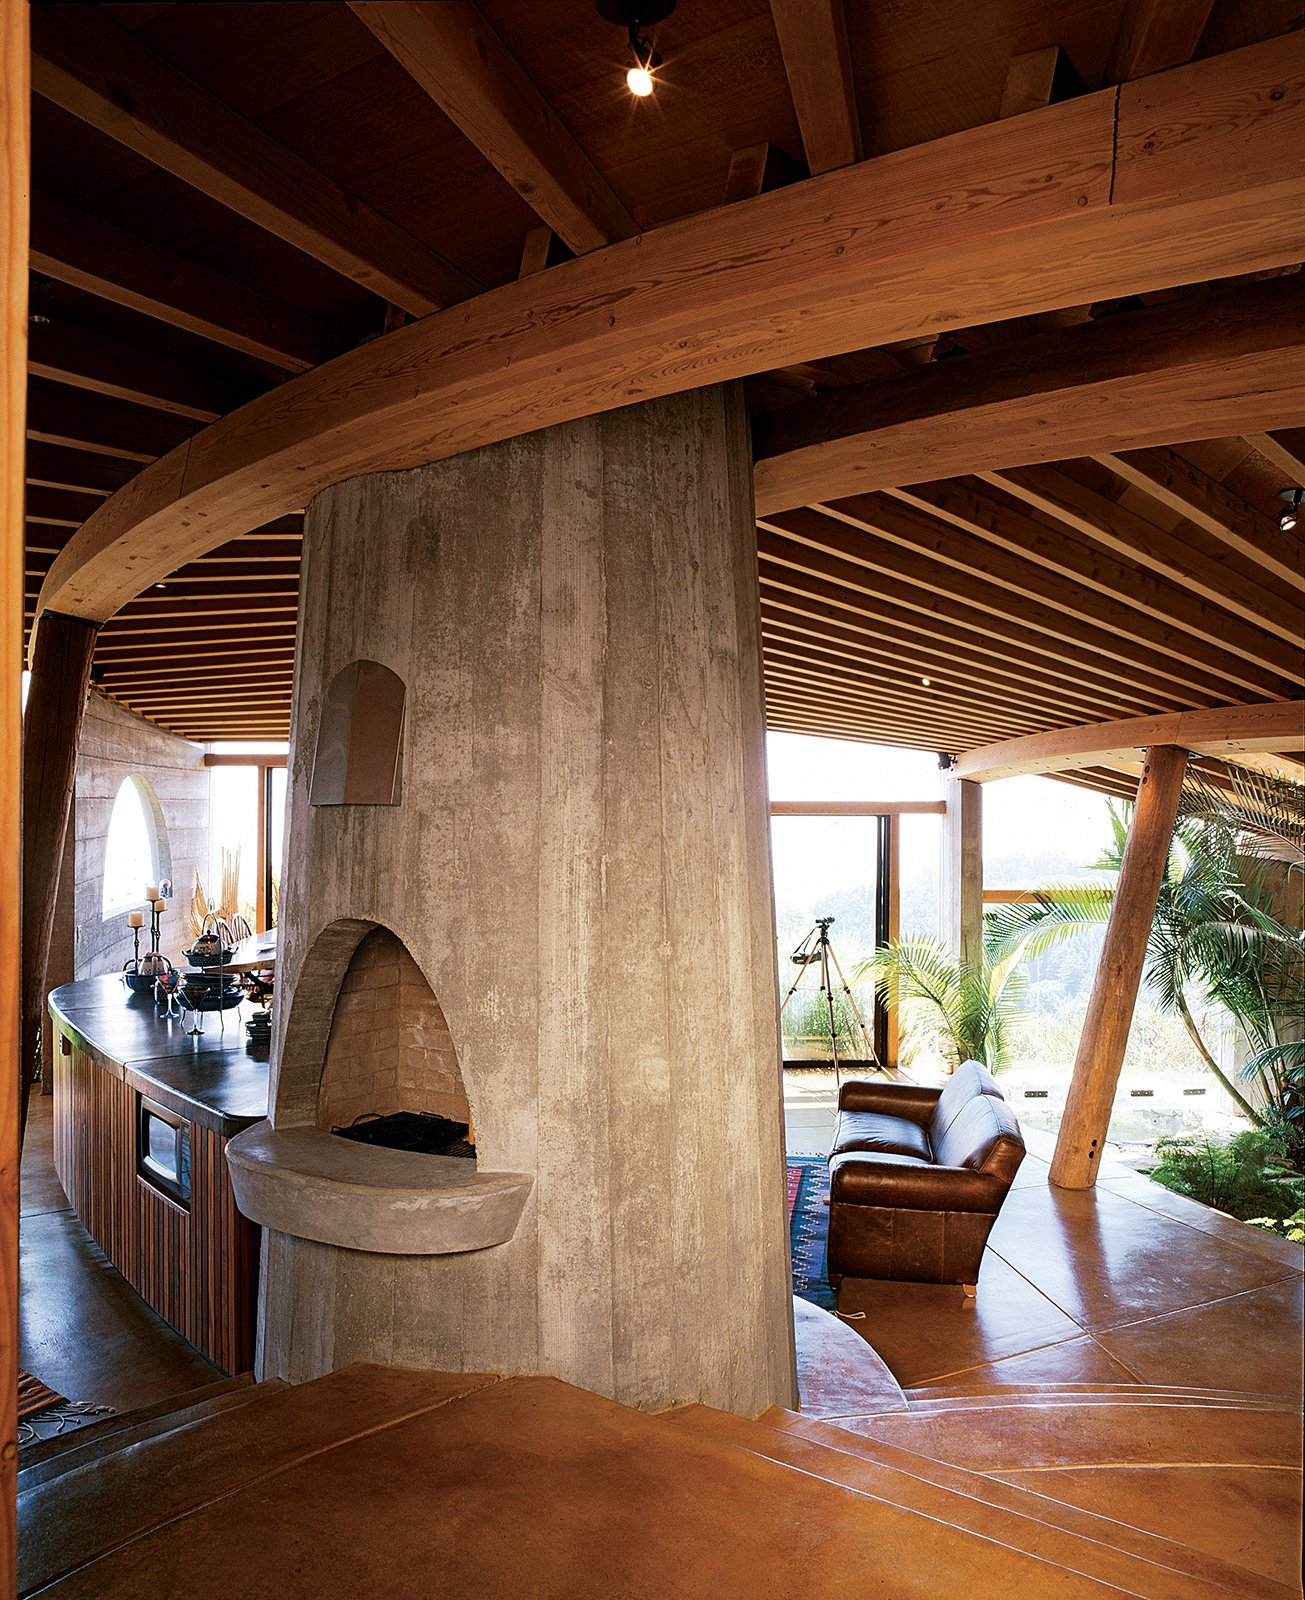 Living Room, Wood Burning Fireplace, and Sofa The interiors of many of Muennig's houses emphasize natural building materials such as wood, concrete, and stone. Plant life and nature are intrinsic to the Pfeiffer Ridge House IV.  Photo 1 of 9 in Big Sur: Coastal Commissions